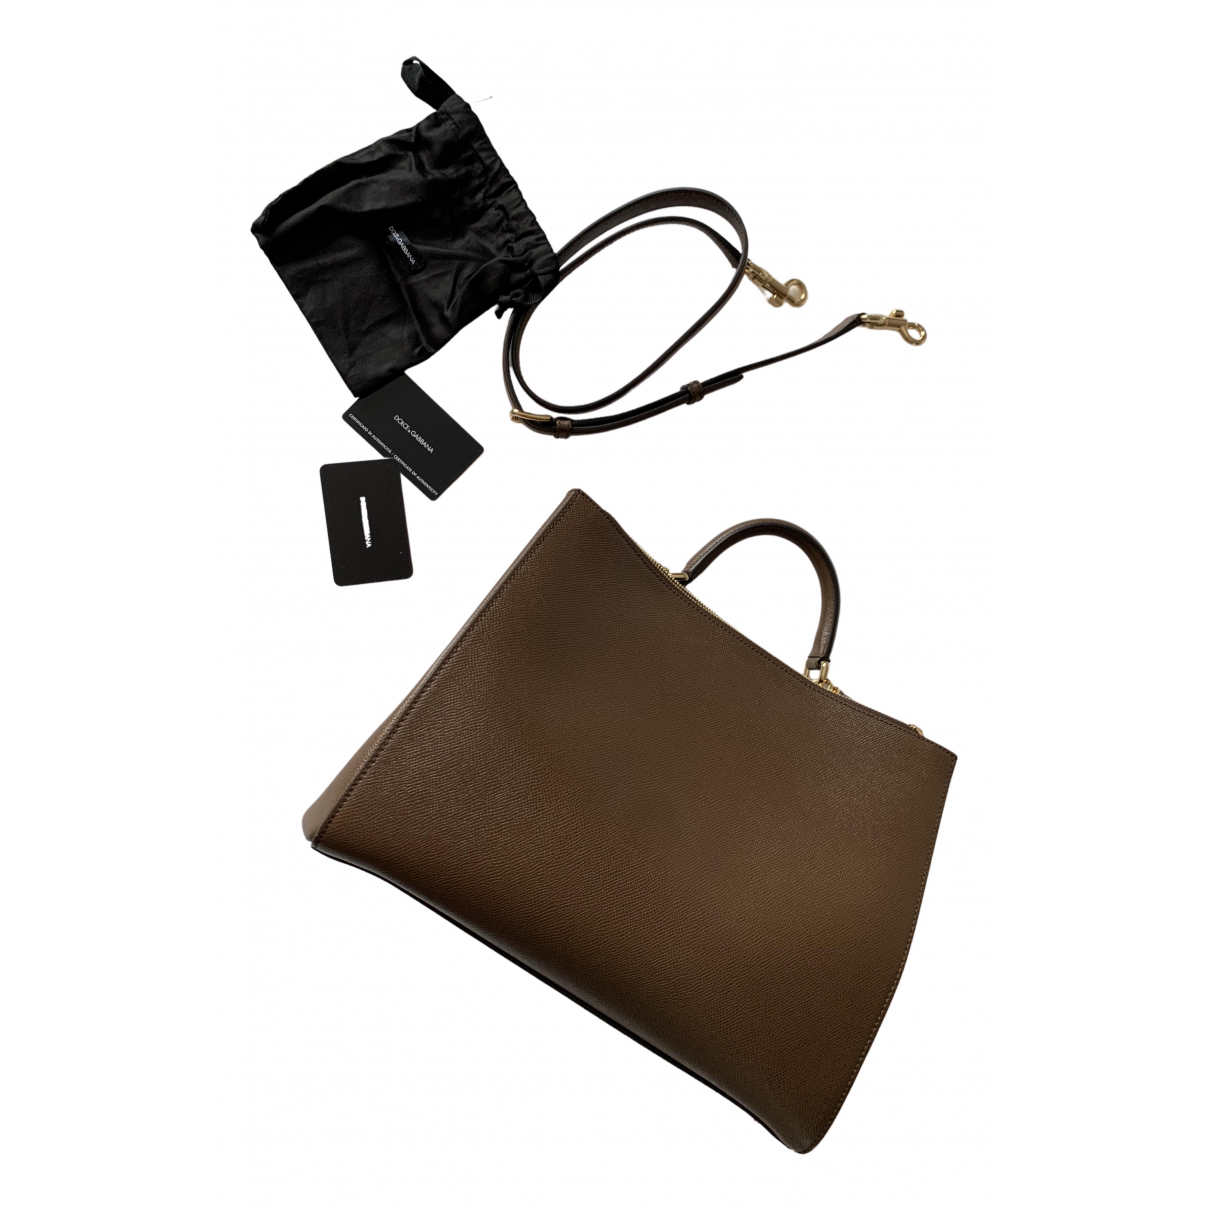 Dolce & Gabbana N Brown Leather handbag for Women N